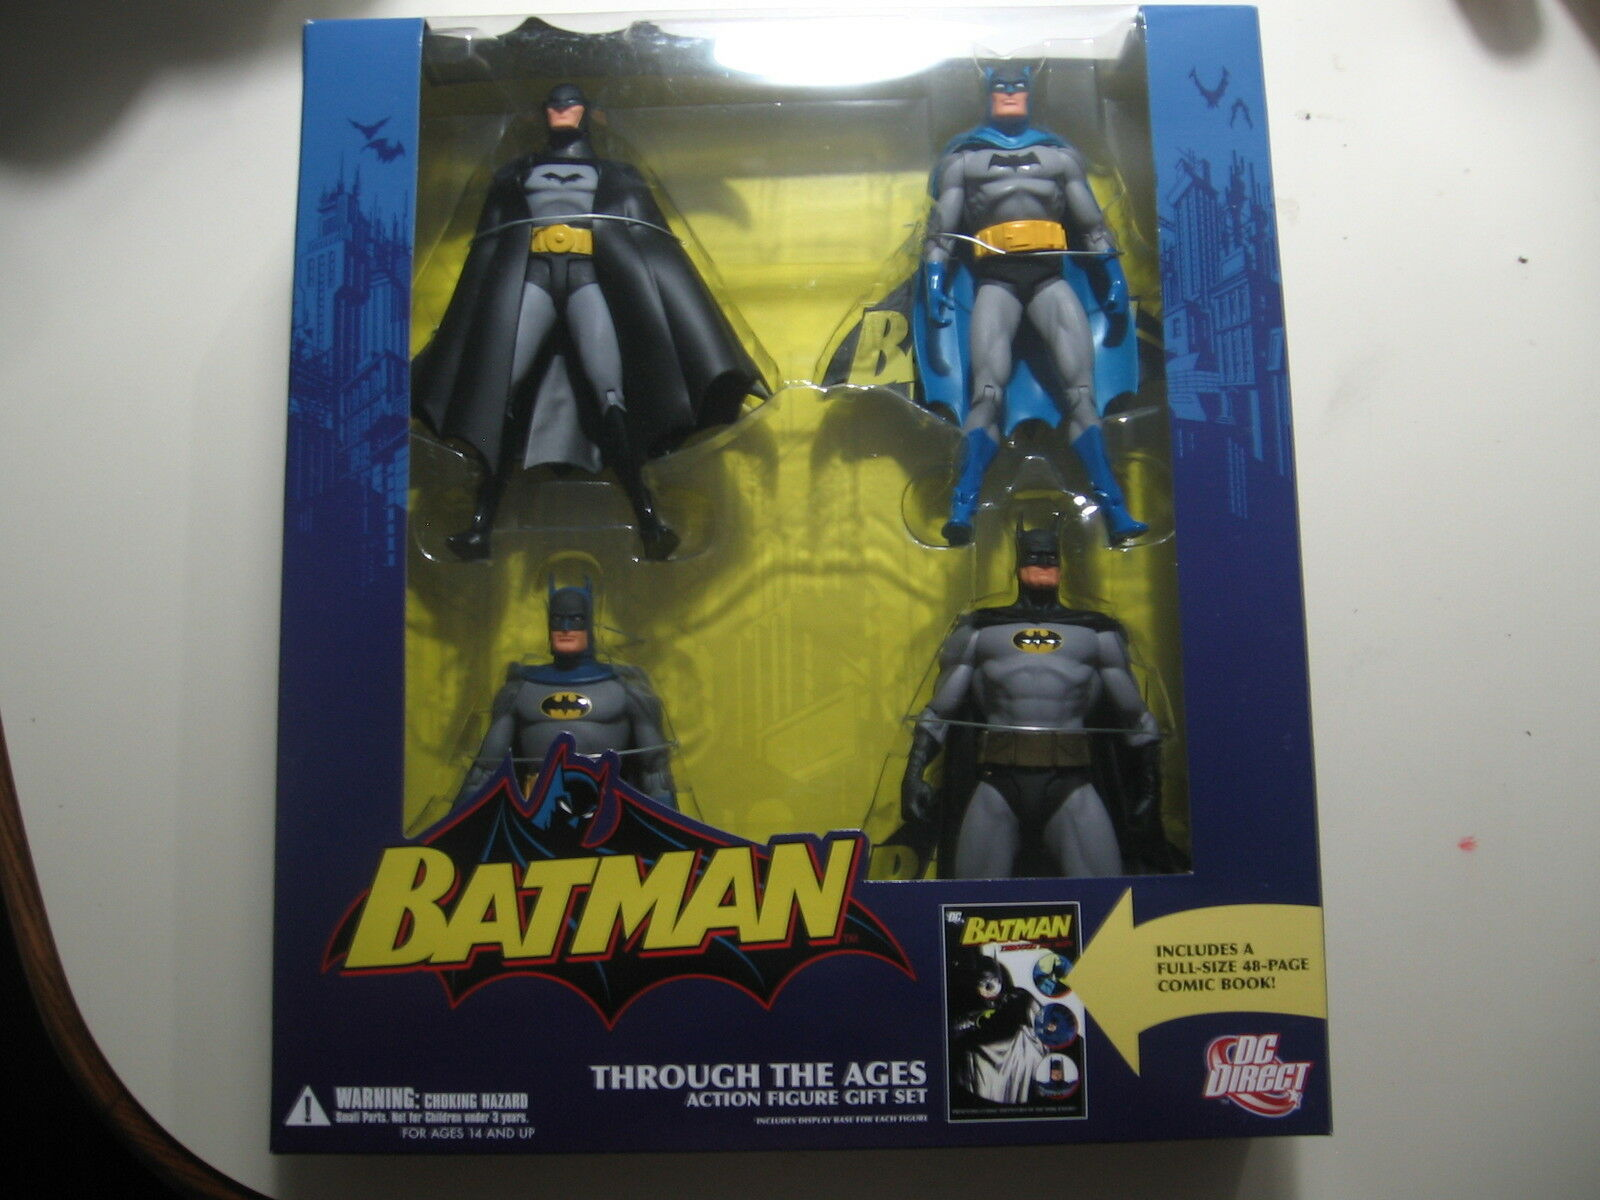 Batman Through the Ages action figure set w comic book, Brand New & Sealed